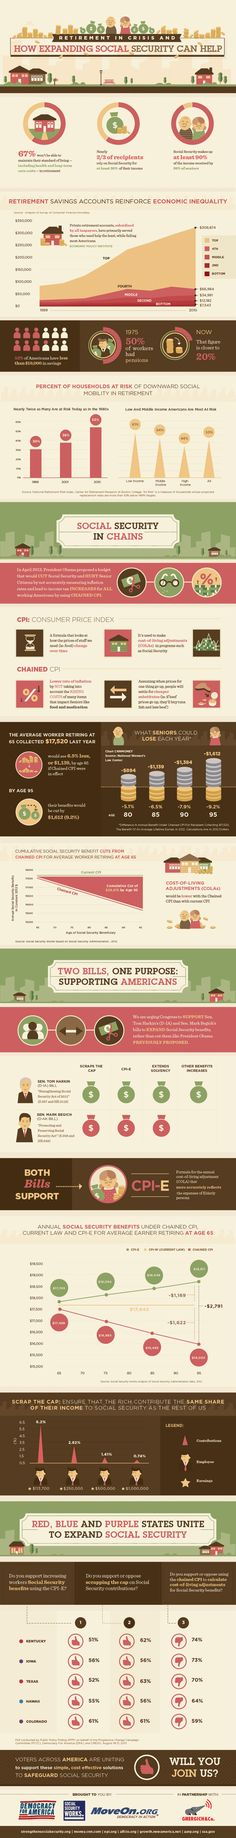 The retirement security crisis in the United States and the need to expand social security (infographic) - Lets Credit Repair Political Images, Political News, Political Science, Social Democracy, Politics, Information Economics, Digital Customer Journey, Web Design, Social Security Benefits